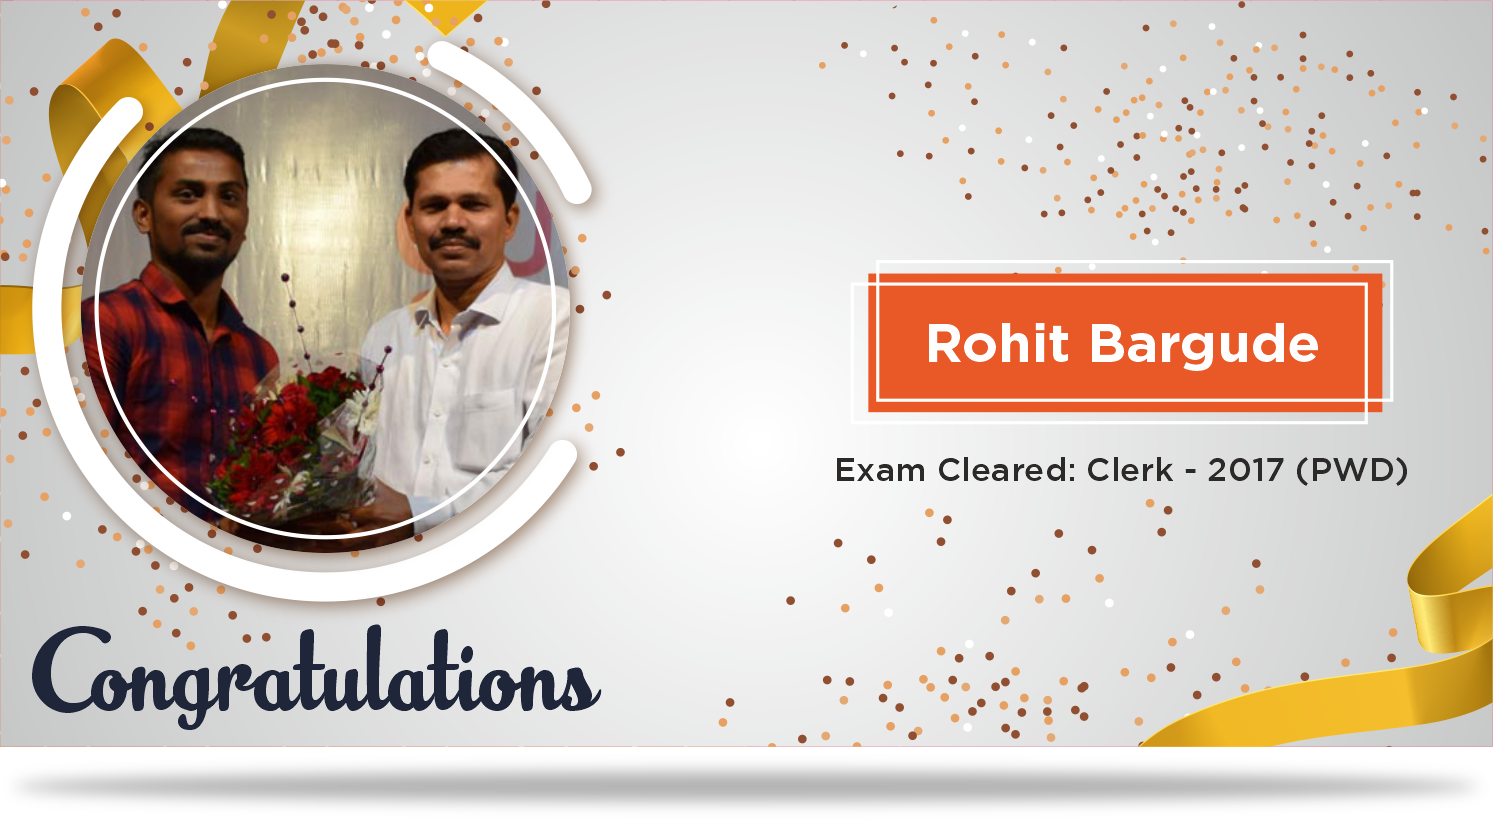 congrats-rohit-bargude-guidance-group